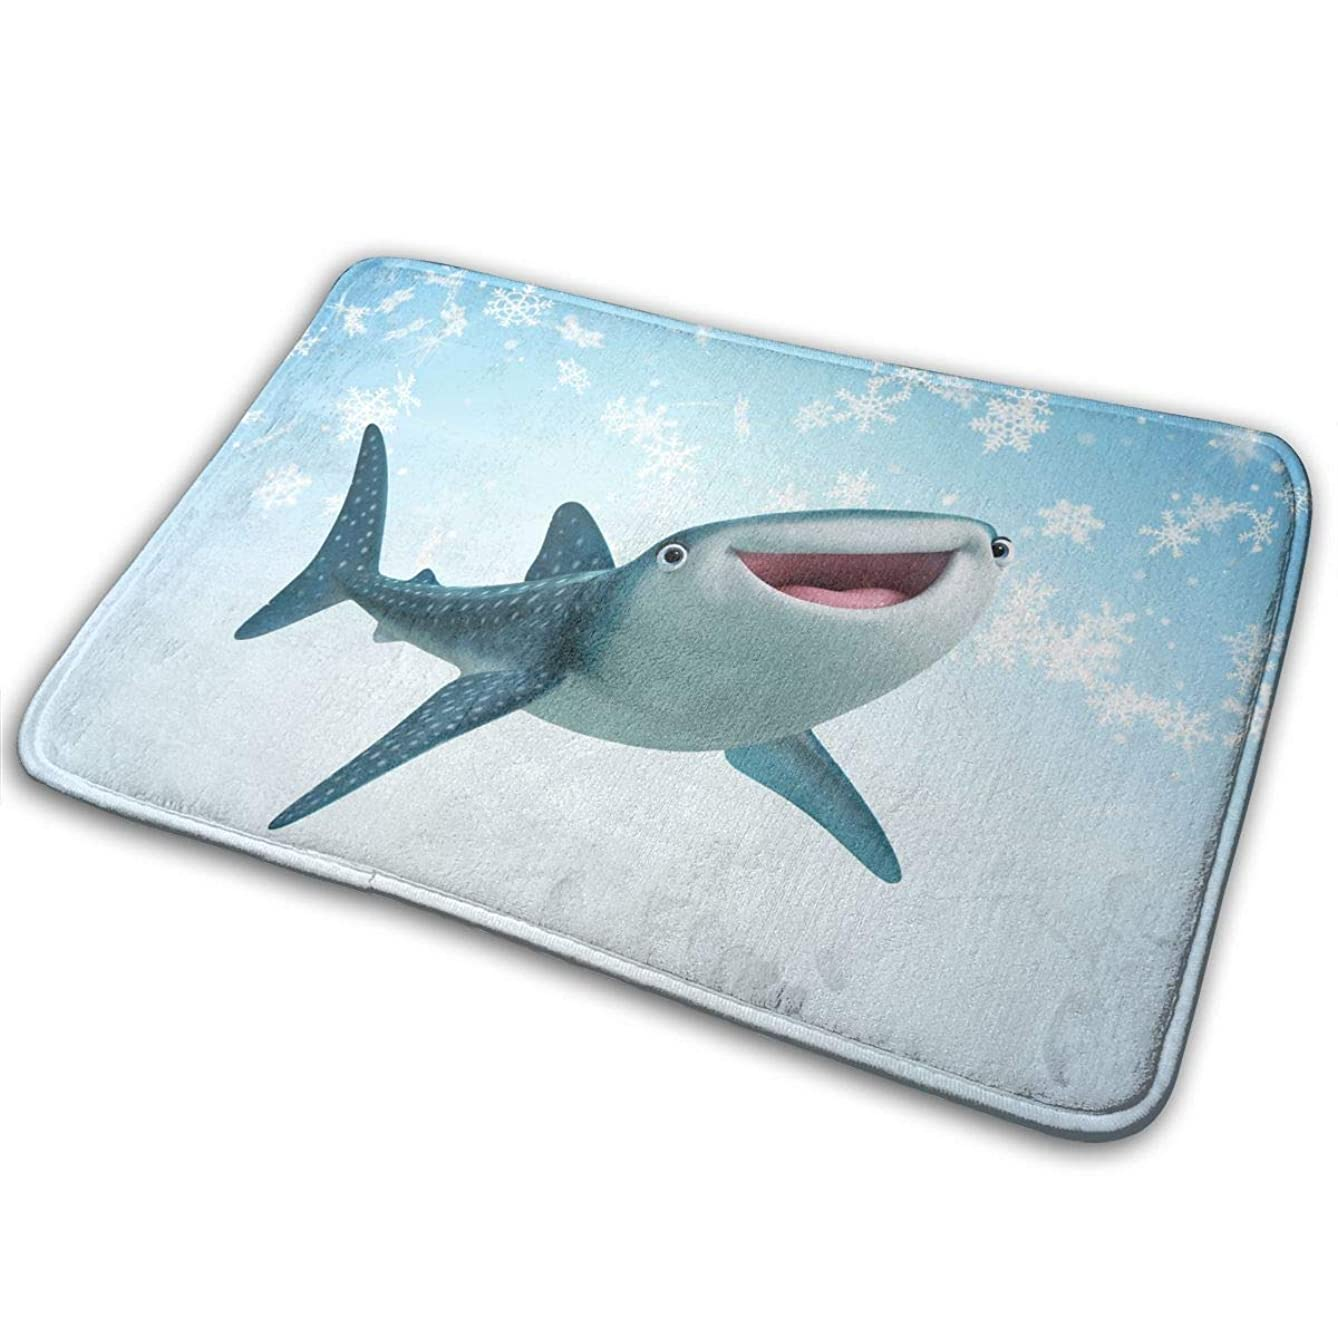 EWFXZq Whale Shark Doormat Anti-Slip House Garden Gate Carpet Door Mat Floor Pads 15.7